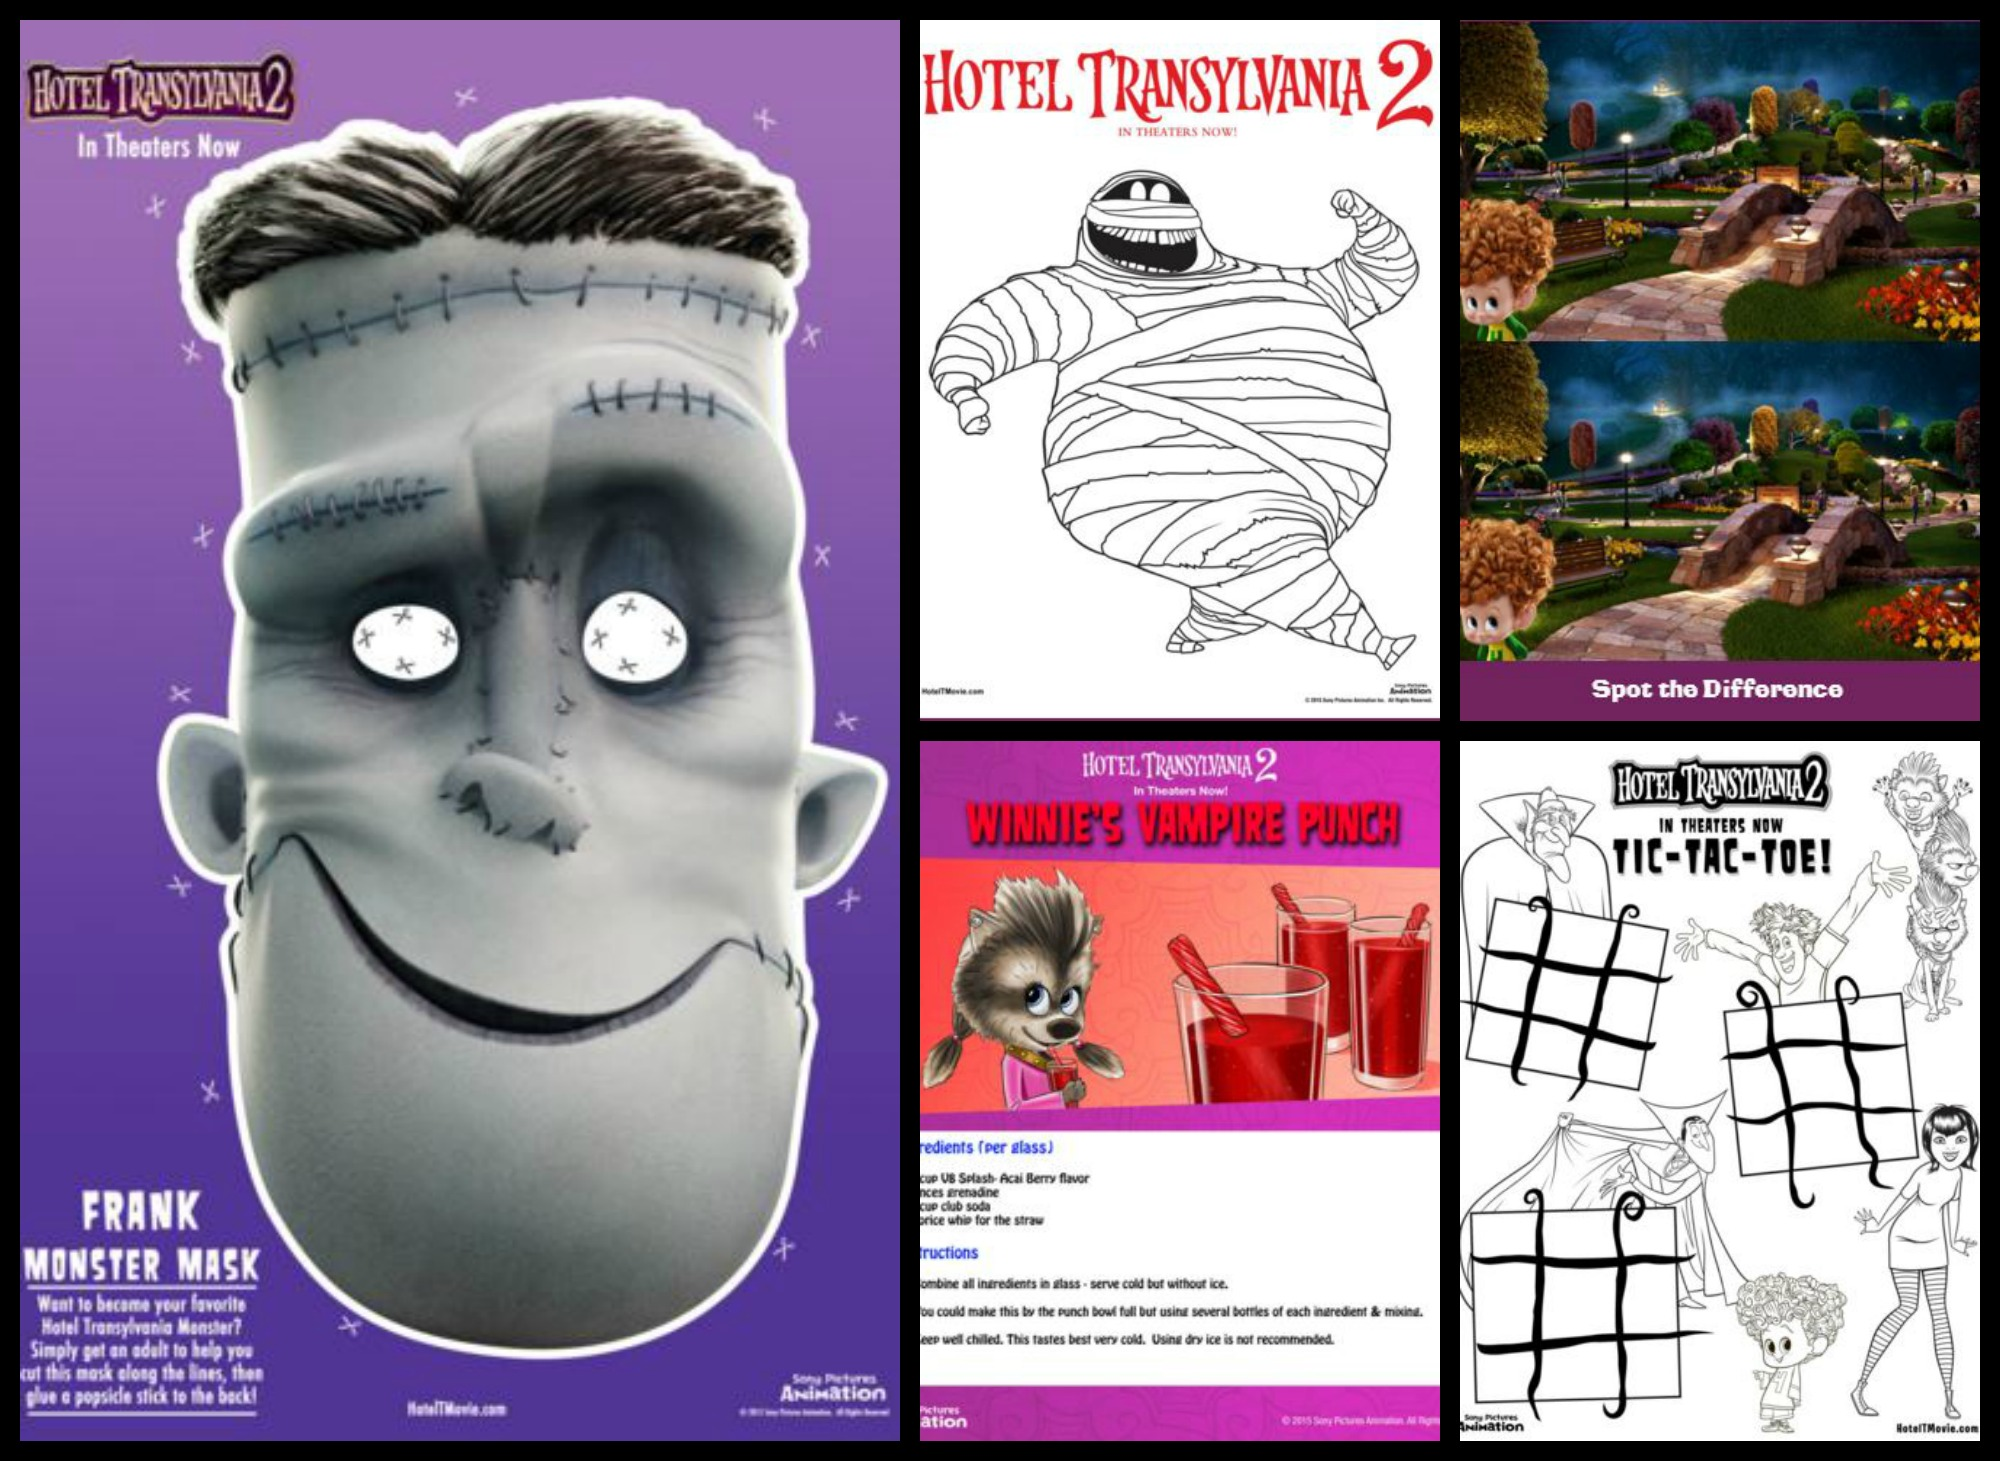 Hotel Transylvania 2 Printable Halloween Masks, Recipes, Games, and More! #HotelT2